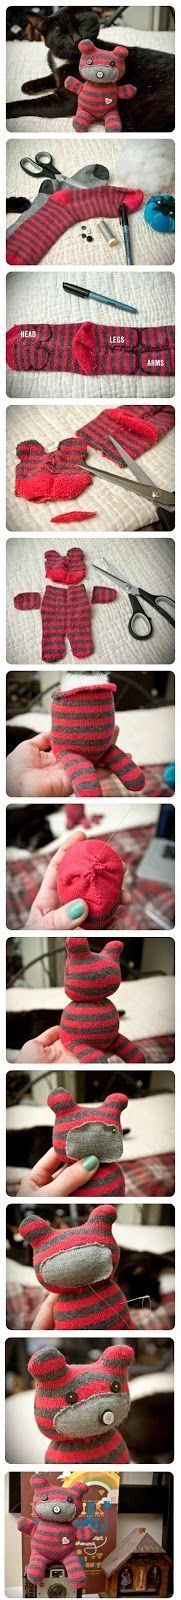 how to make a bear with an old sock: